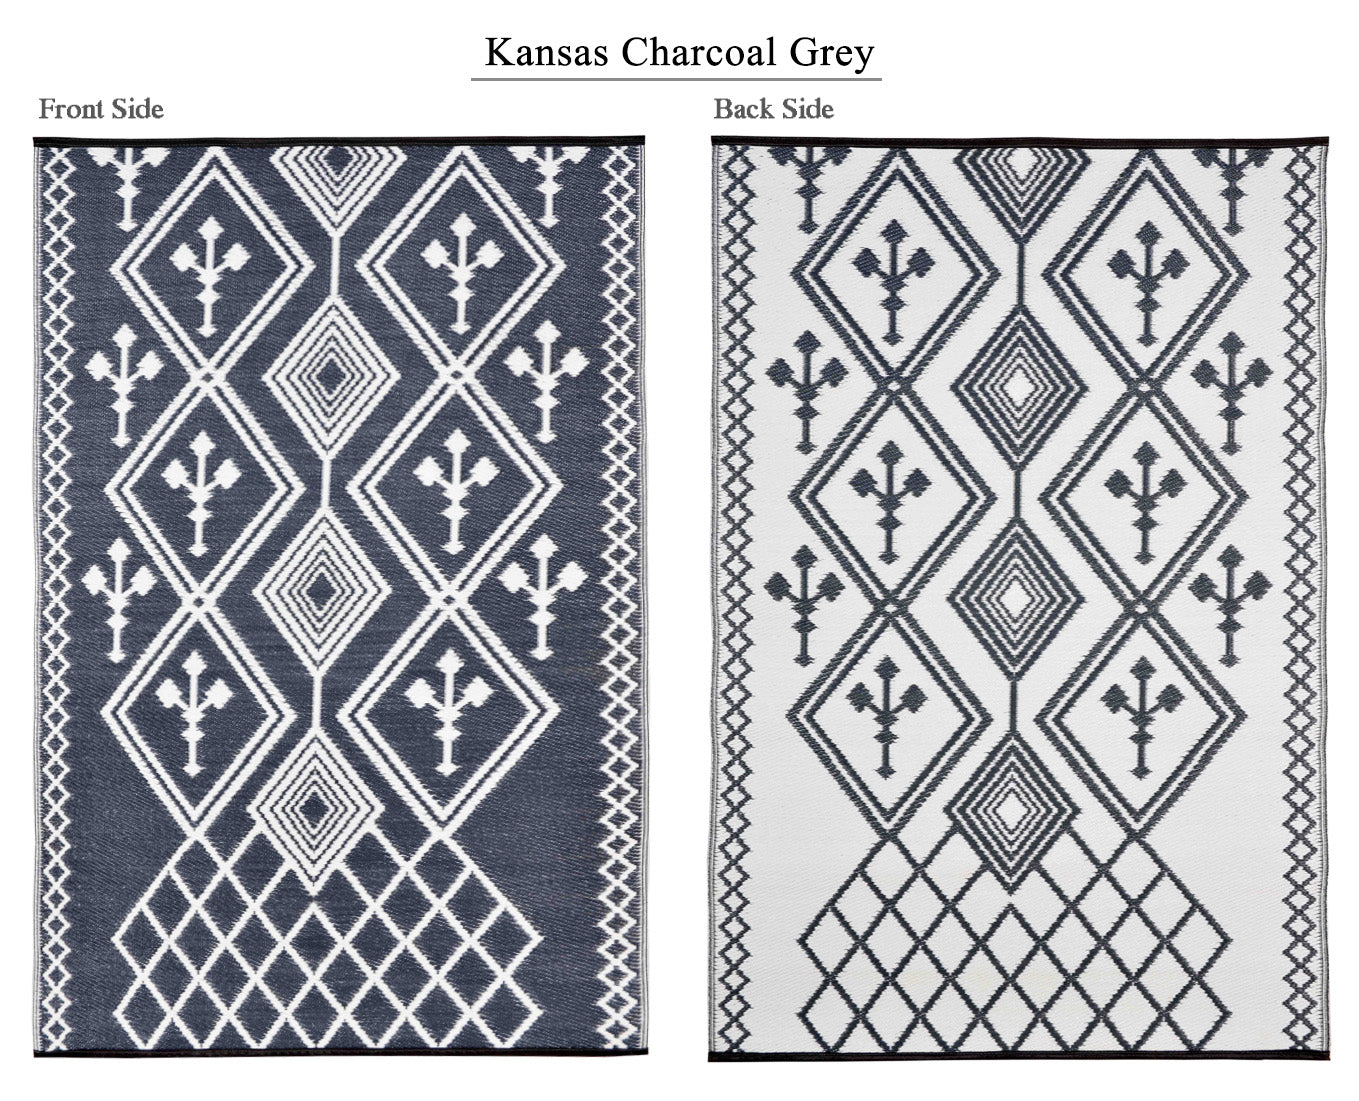 Kansas Outdoor Recycled Plastic Rug (Grey/White)